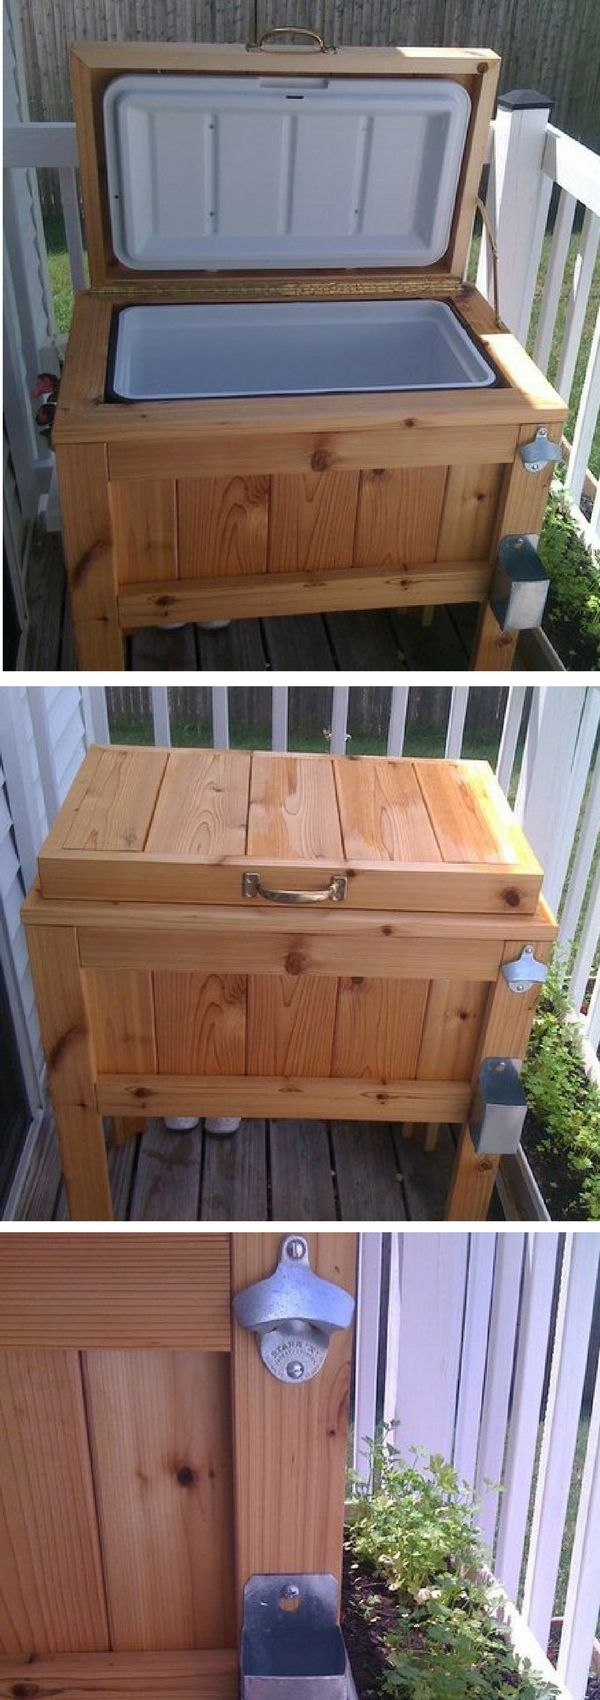 DIY Outdoor Furniture - 40 Easy Projects You Can Do Right Now #diyprojects